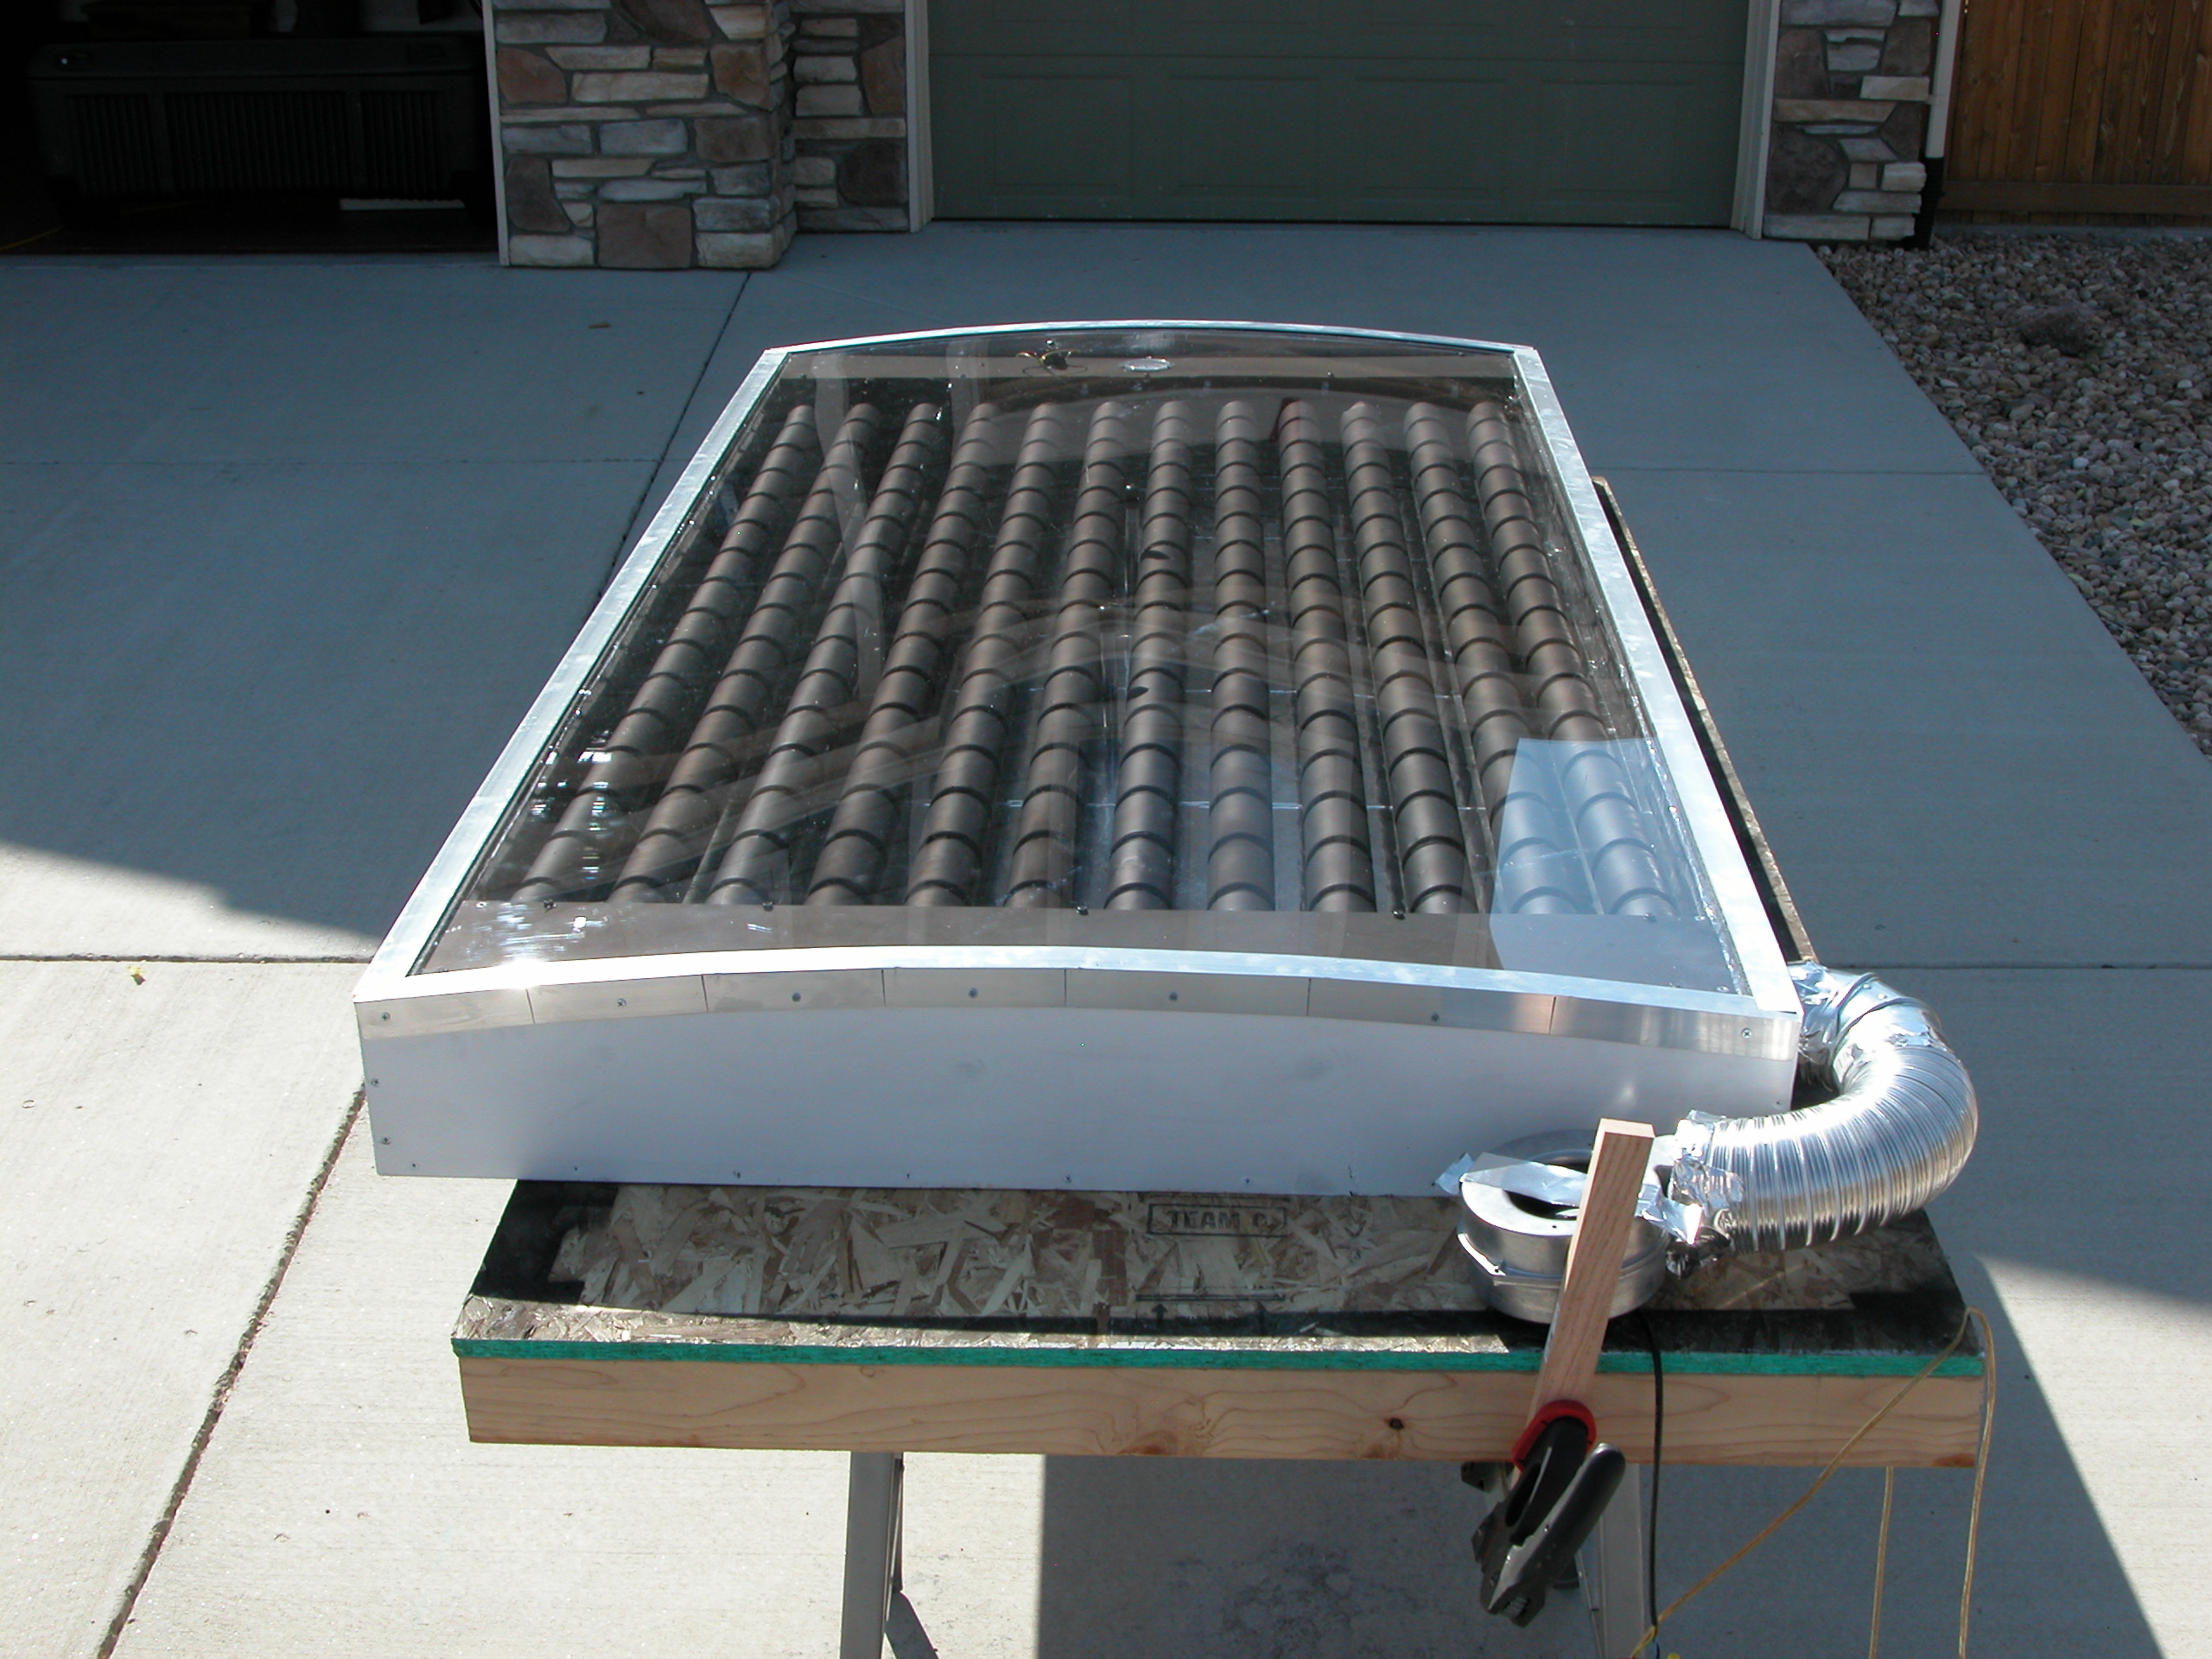 DIY Solar Can Heater - Odd Jobs - Home Handyman - DIY Solar Heater